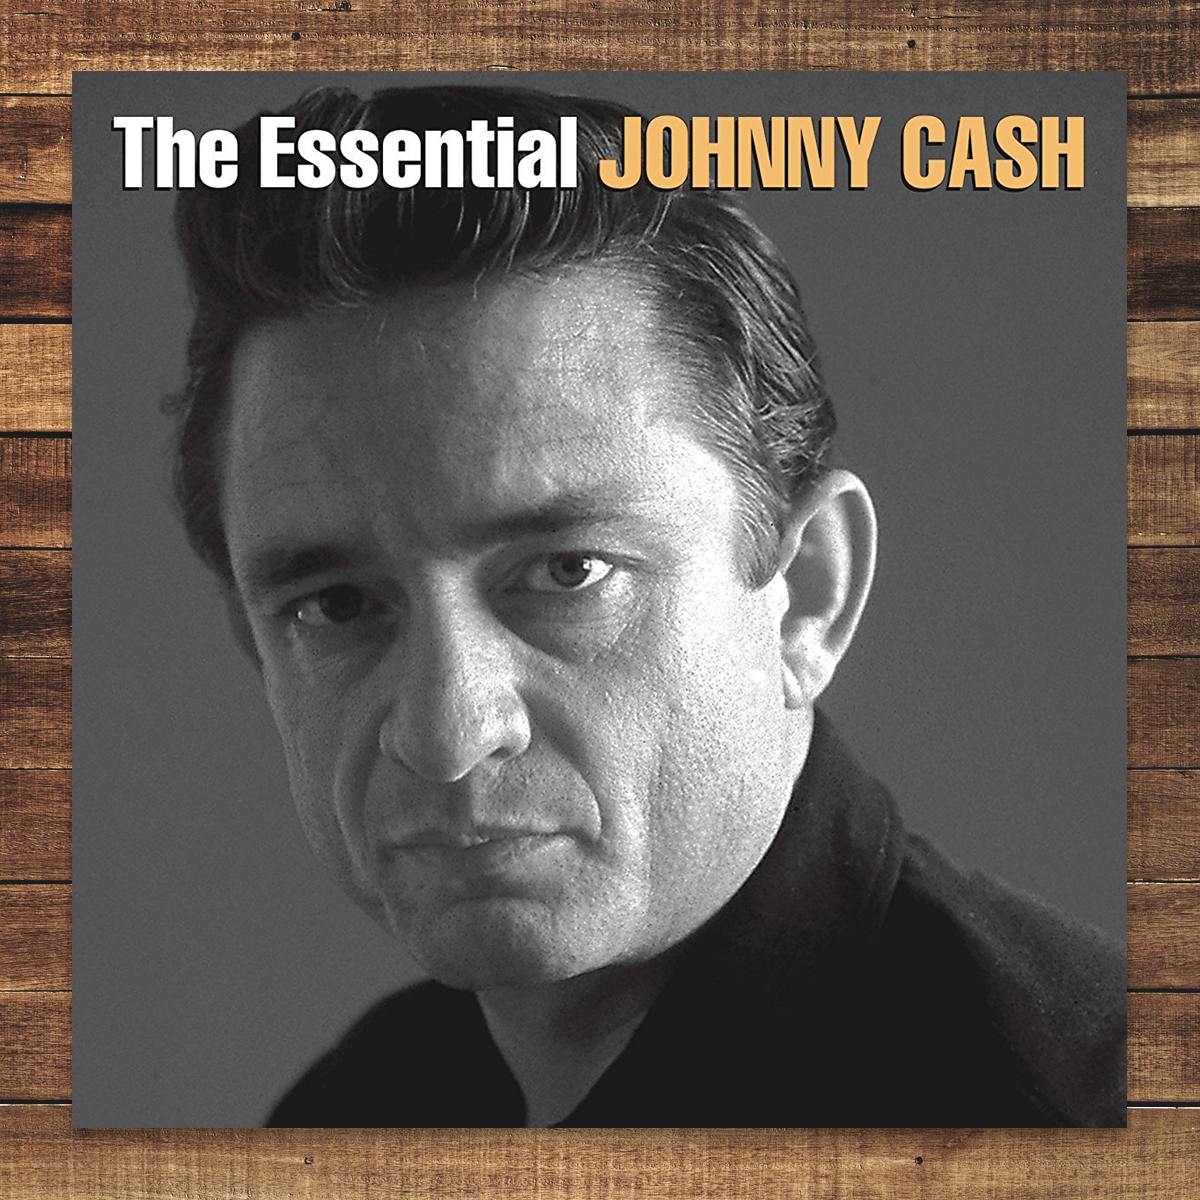 The Essential Johnny Cash LP